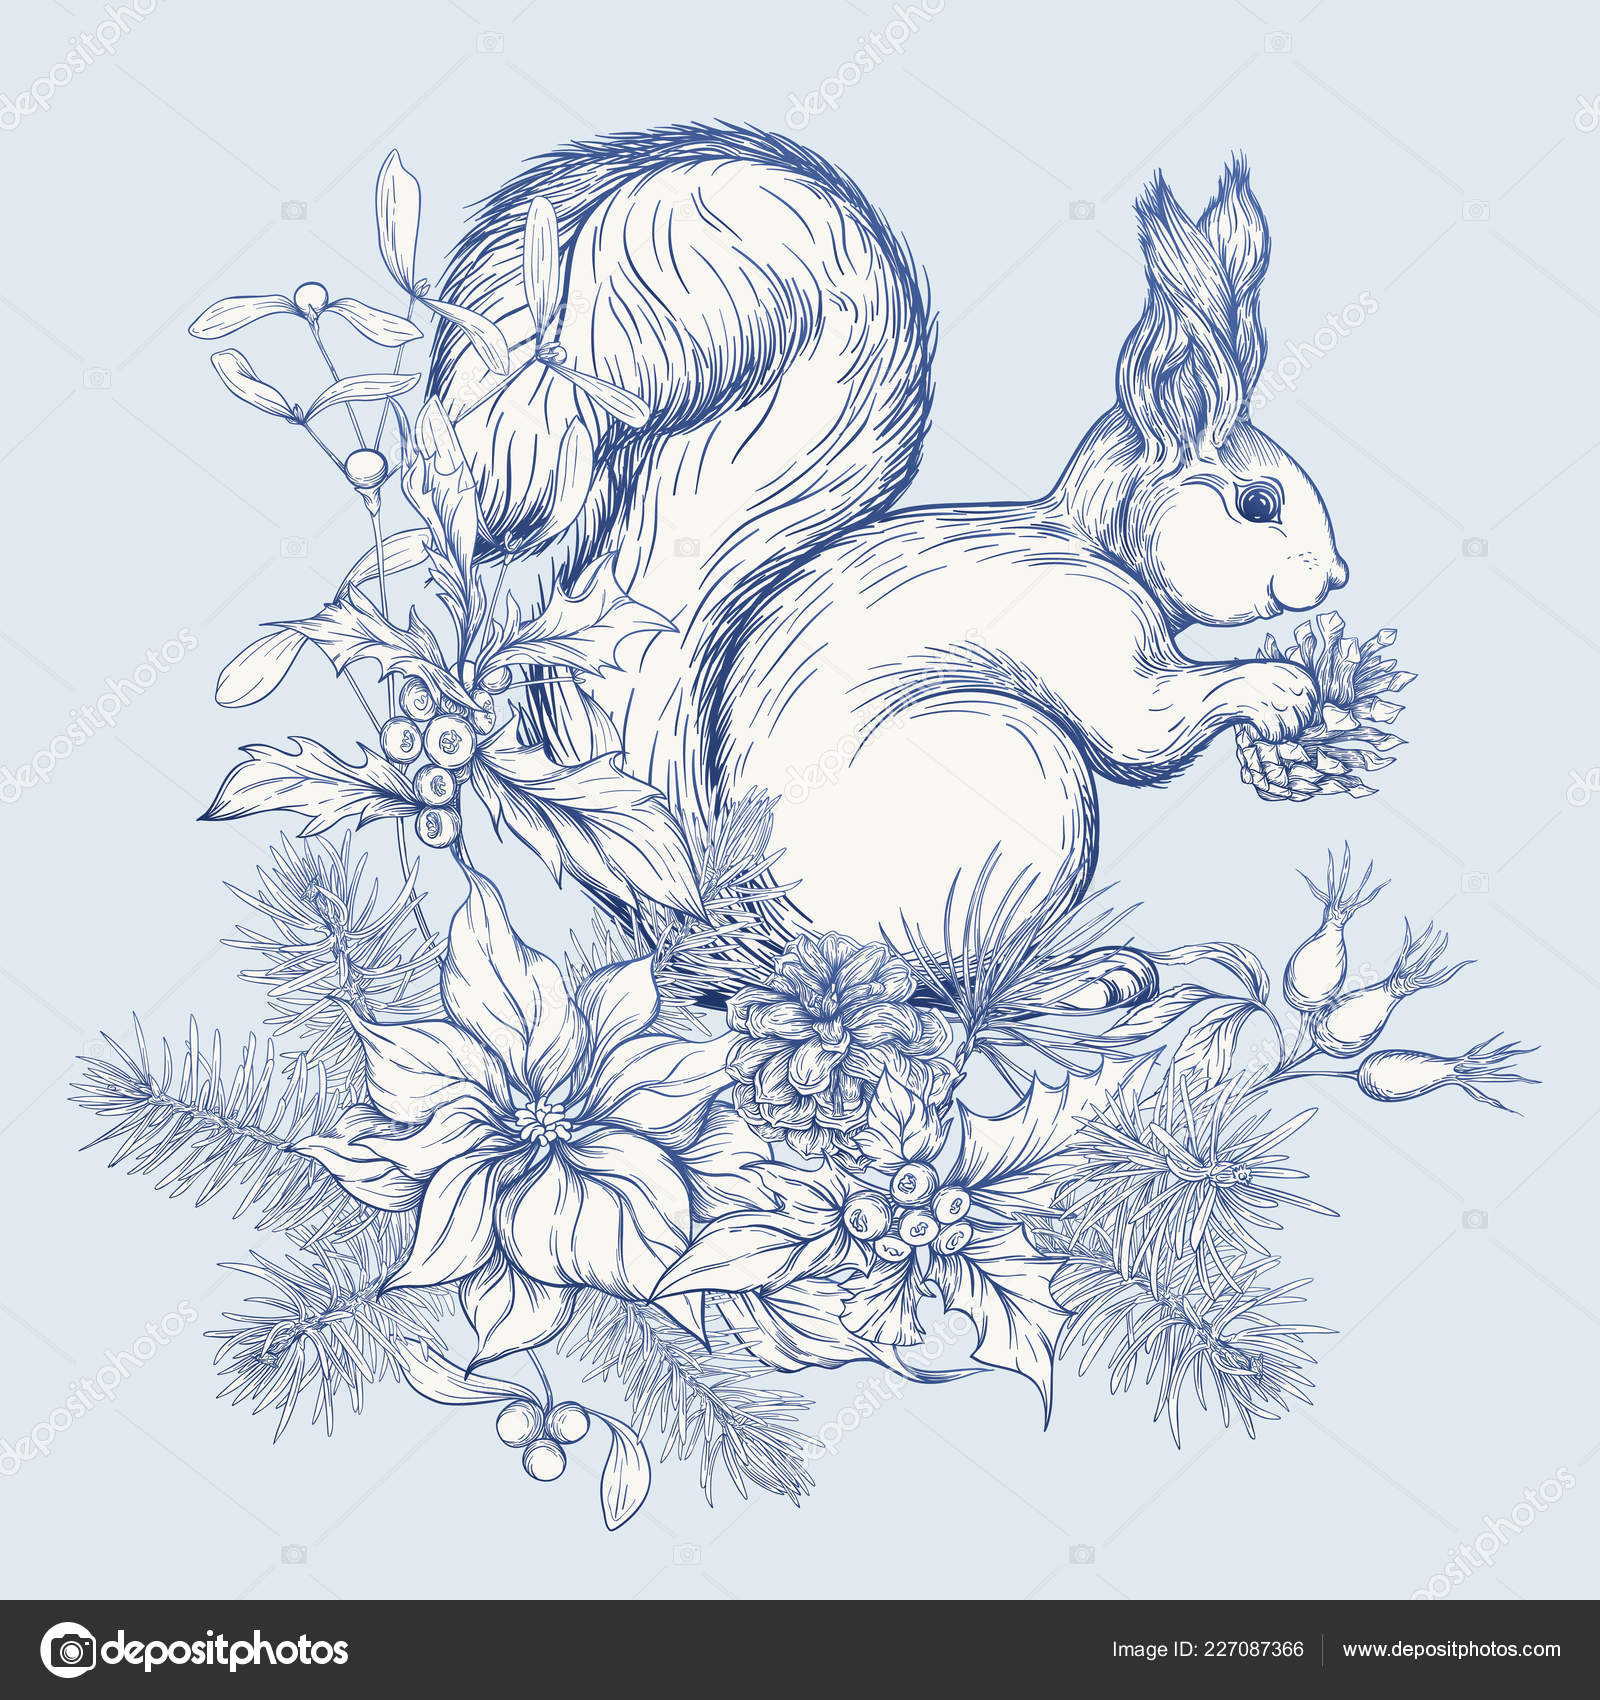 Christmas Wreath Drawing.Squirrel Eating Pine Cone Sitting Christmas Wreath Graphic